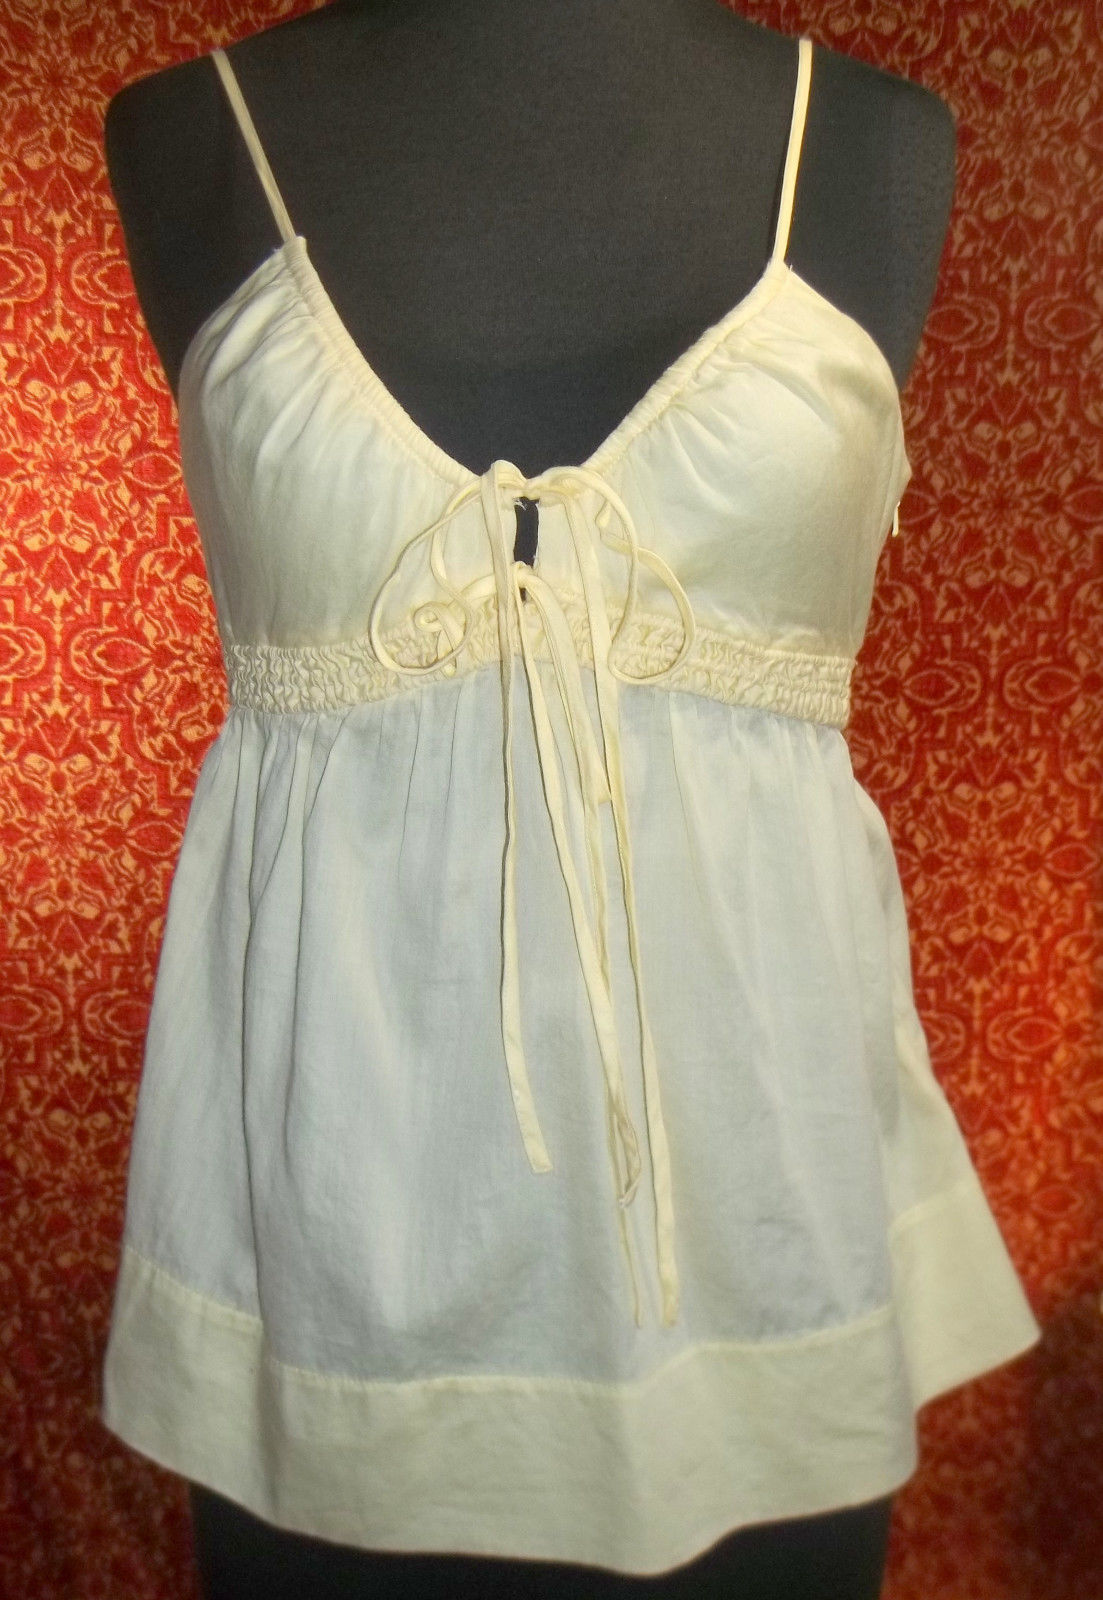 FRENCH CONNECTION pale soft yellow cotton spaghetti blouse 4 (T0503D8G)